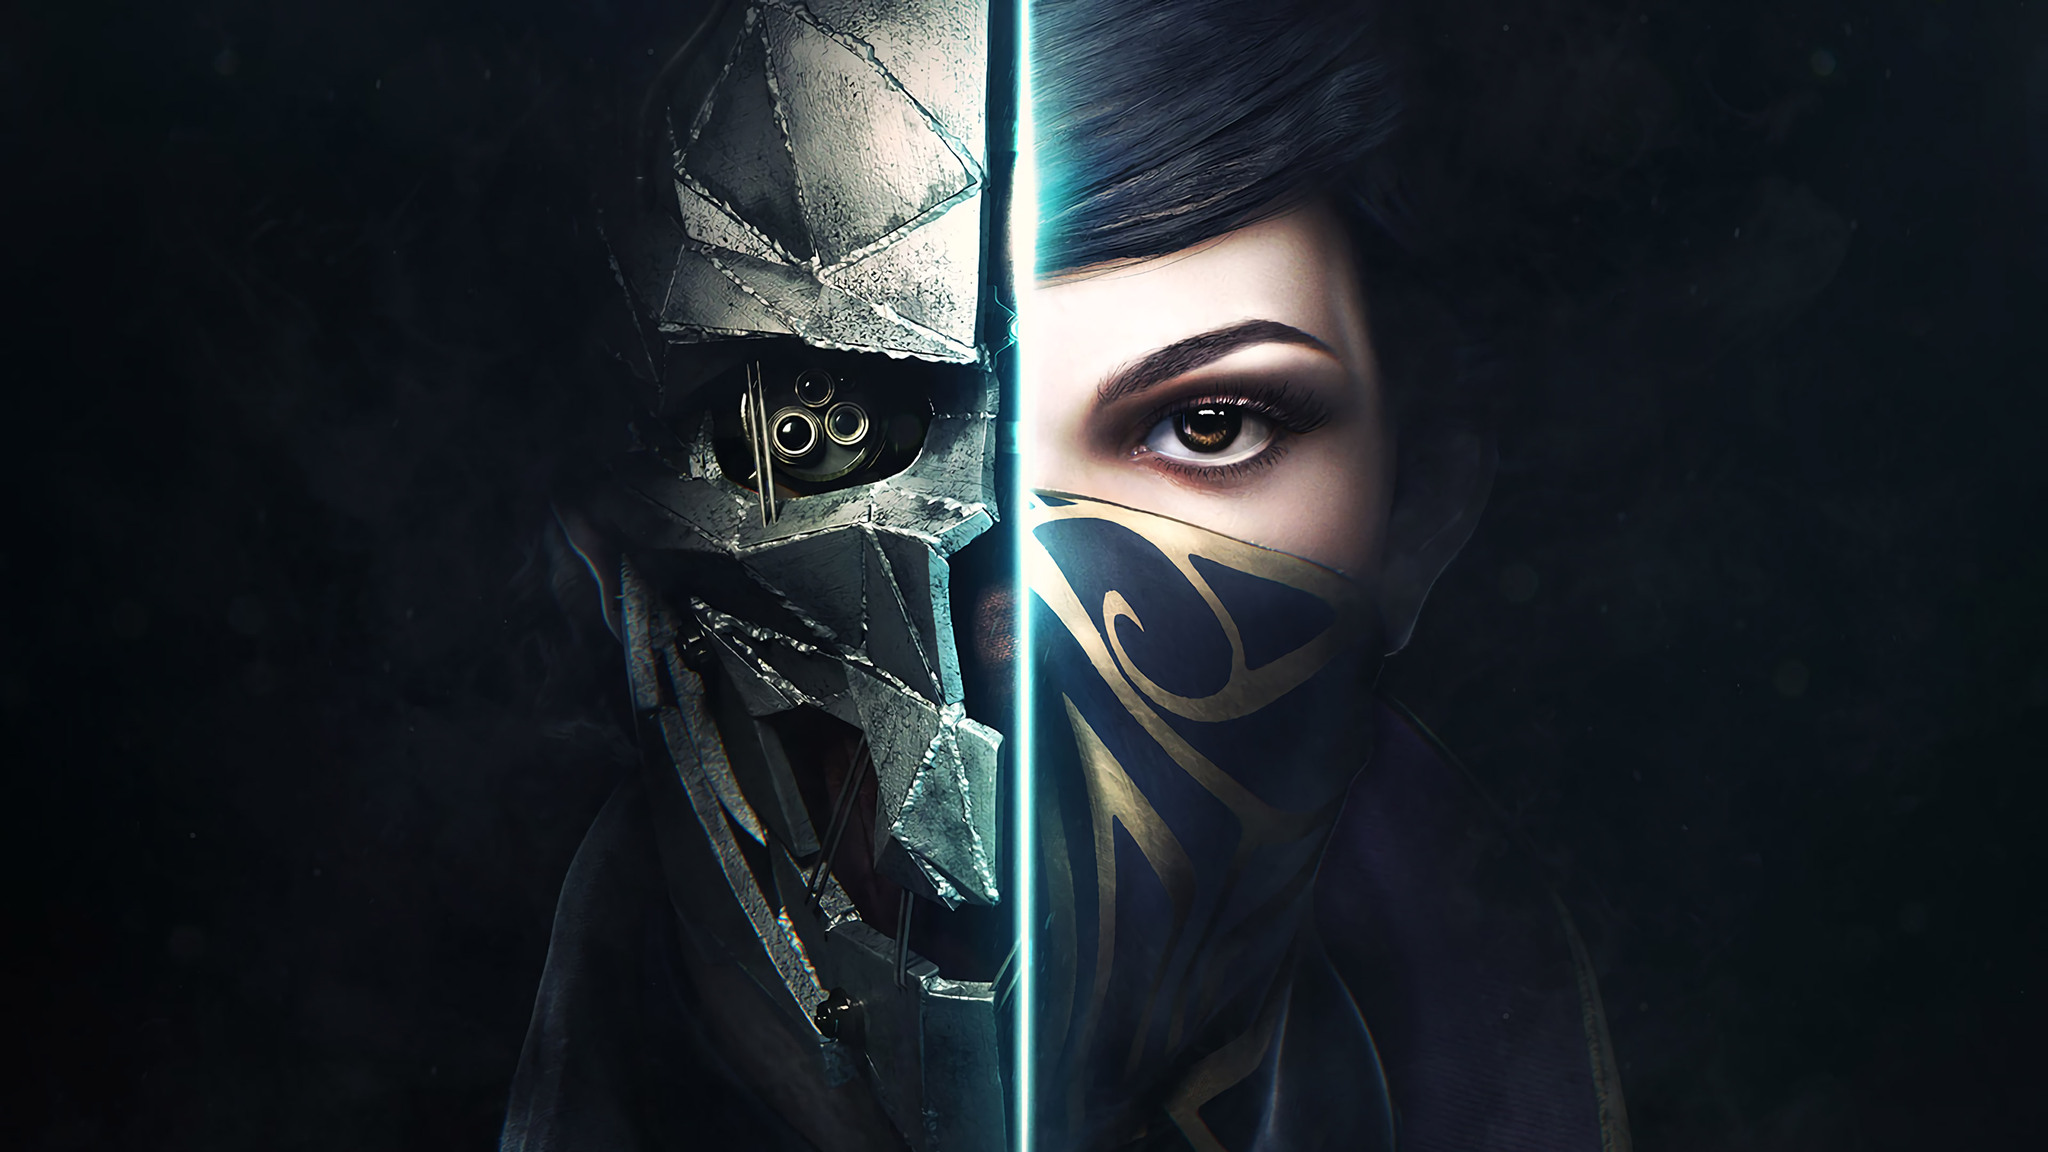 2048x1152 Dishonored 2 4k Game 2048x1152 Resolution Hd 4k Wallpapers